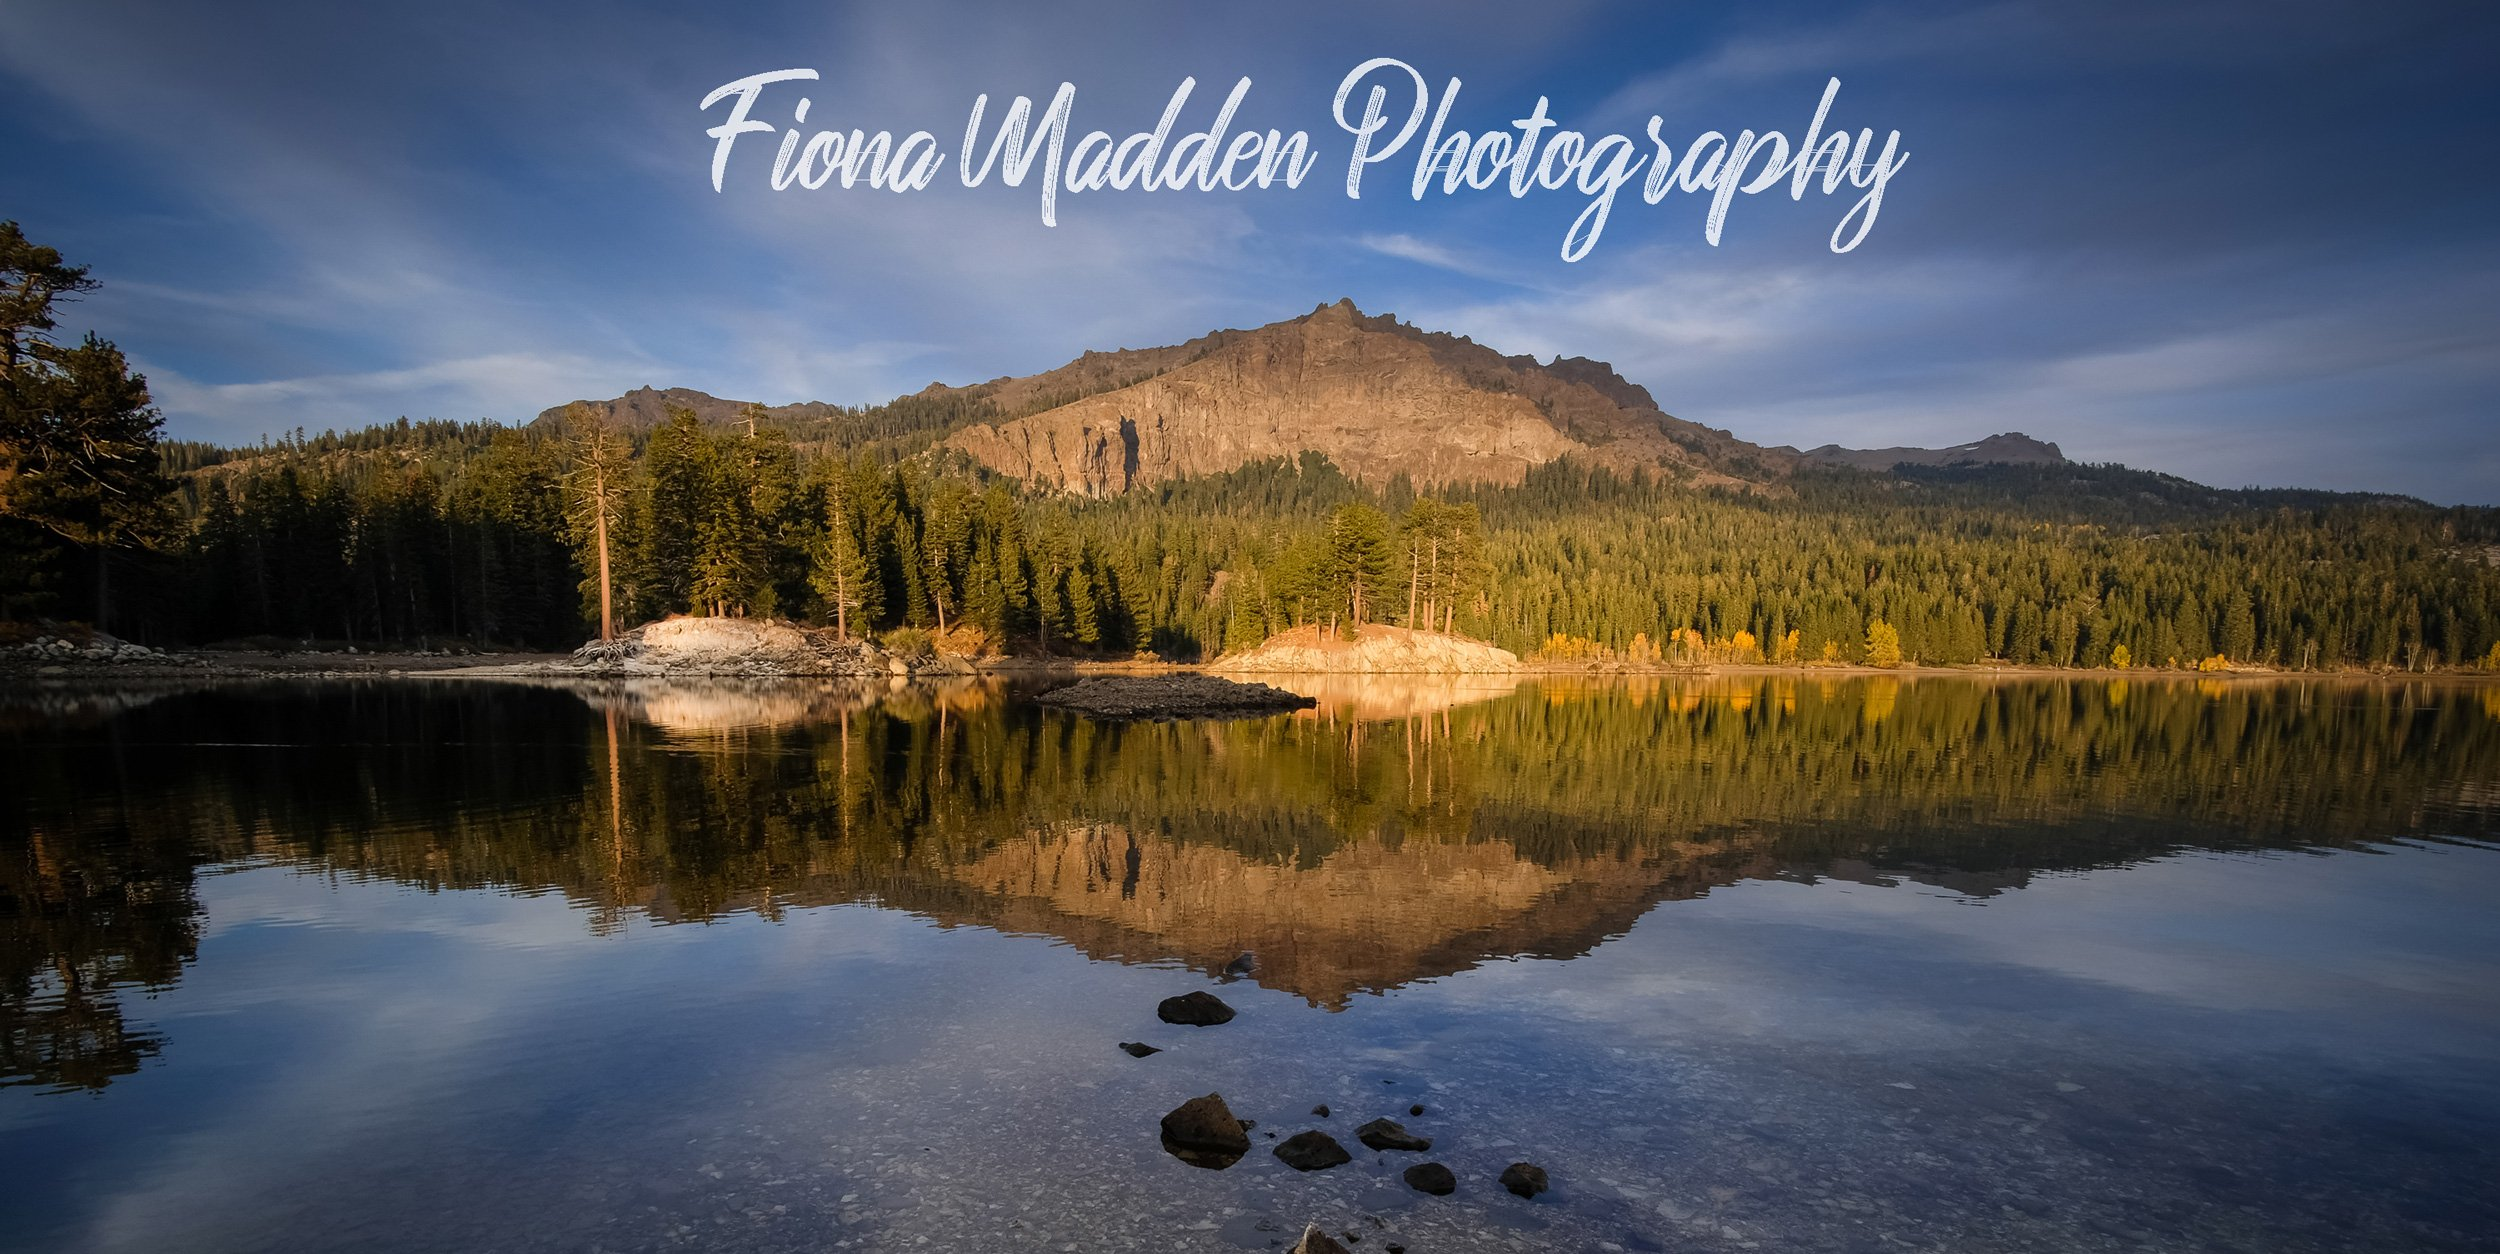 Fiona Madden Photography